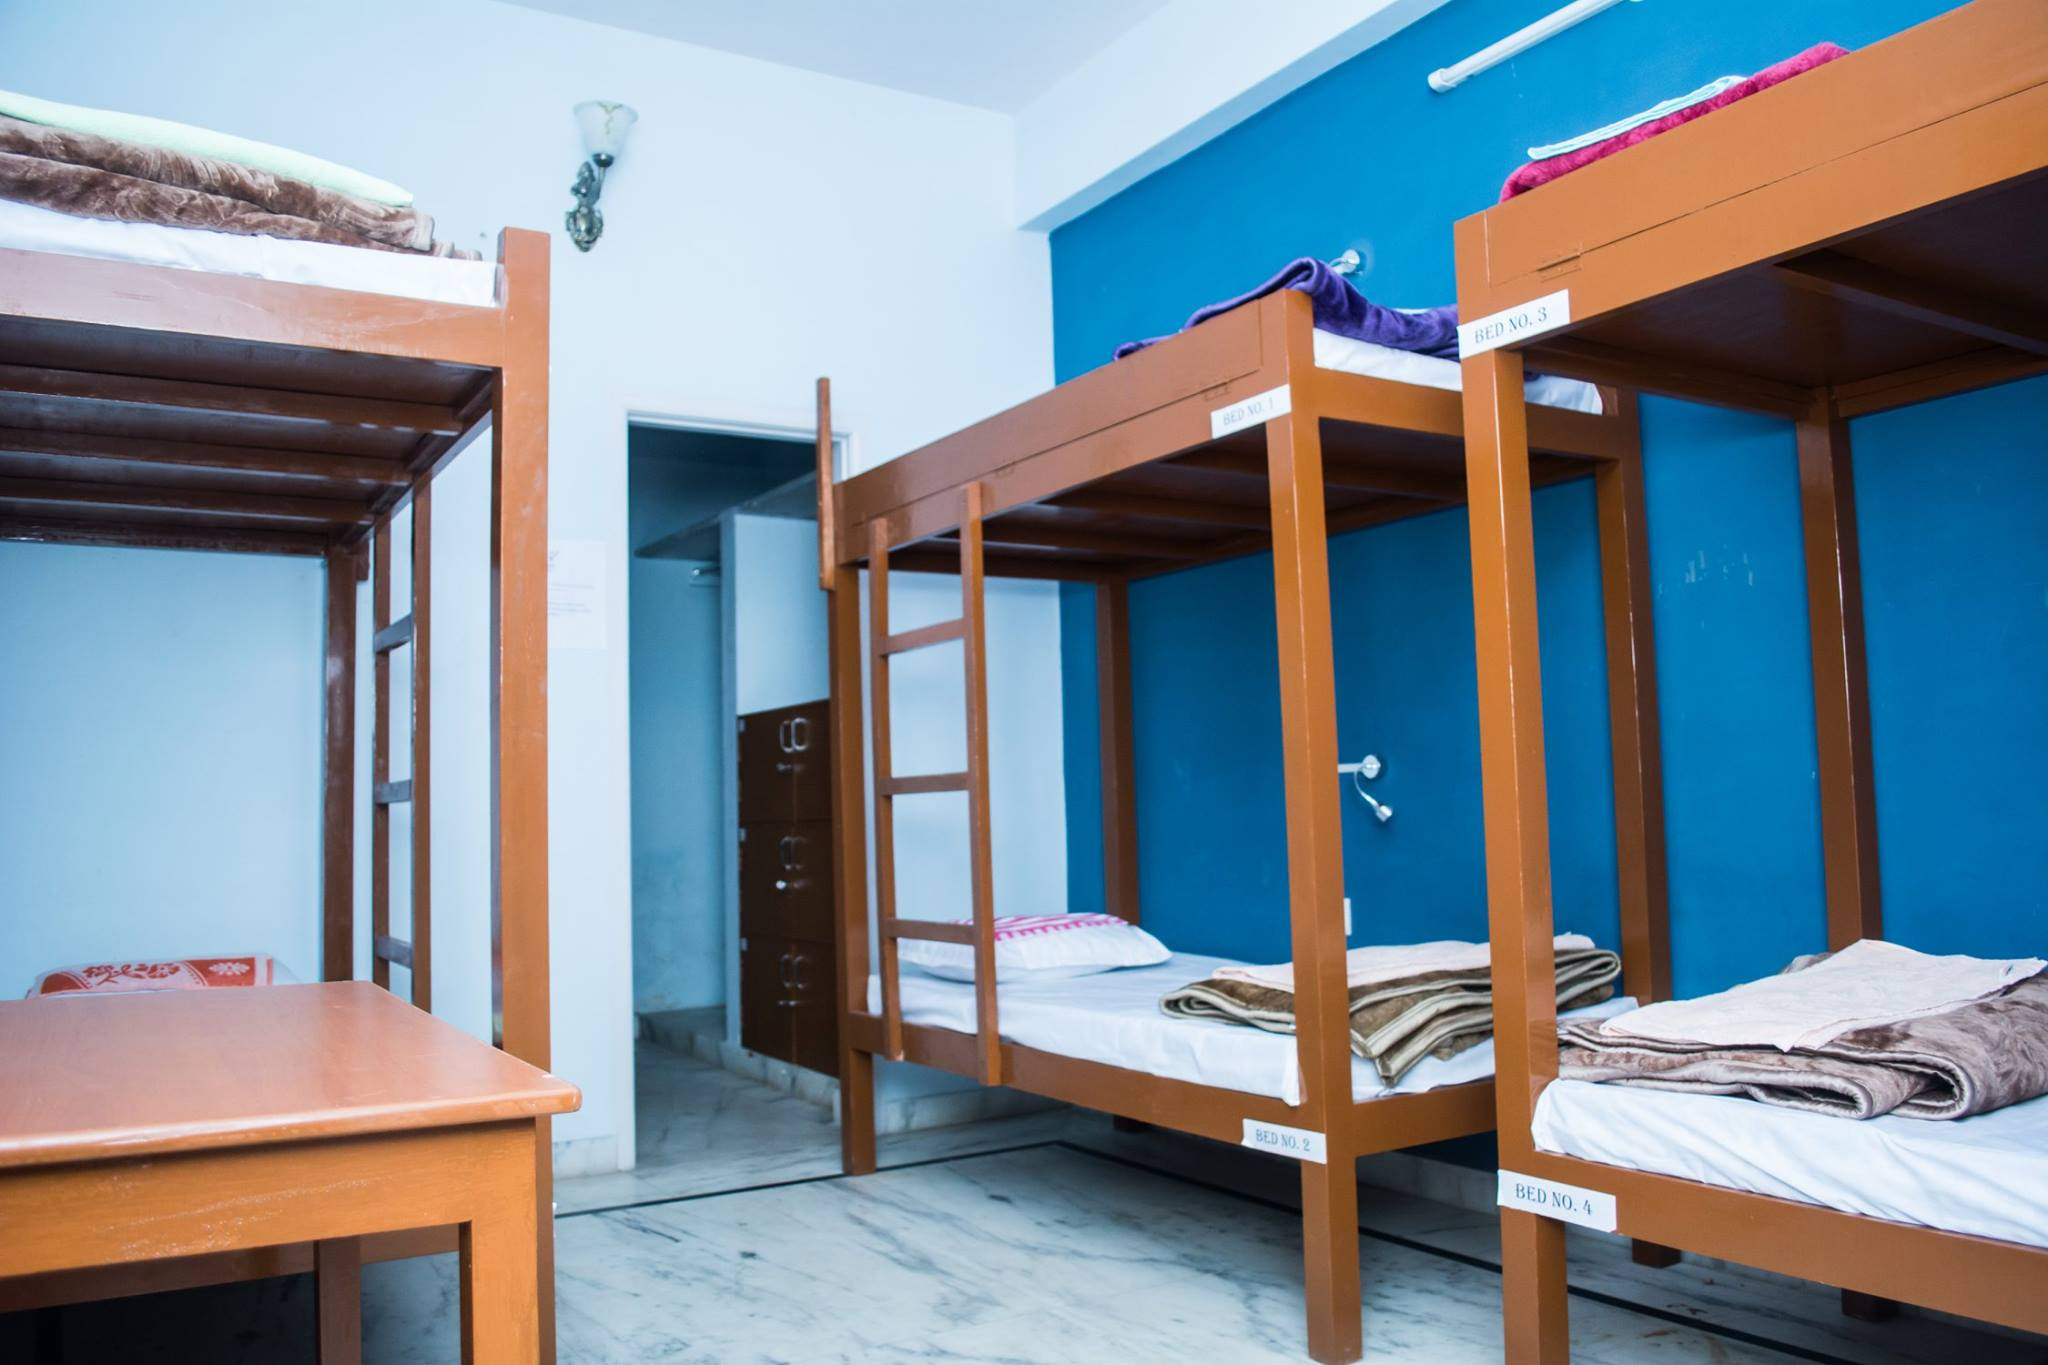 Backpackers Hostels : The smart way to stay